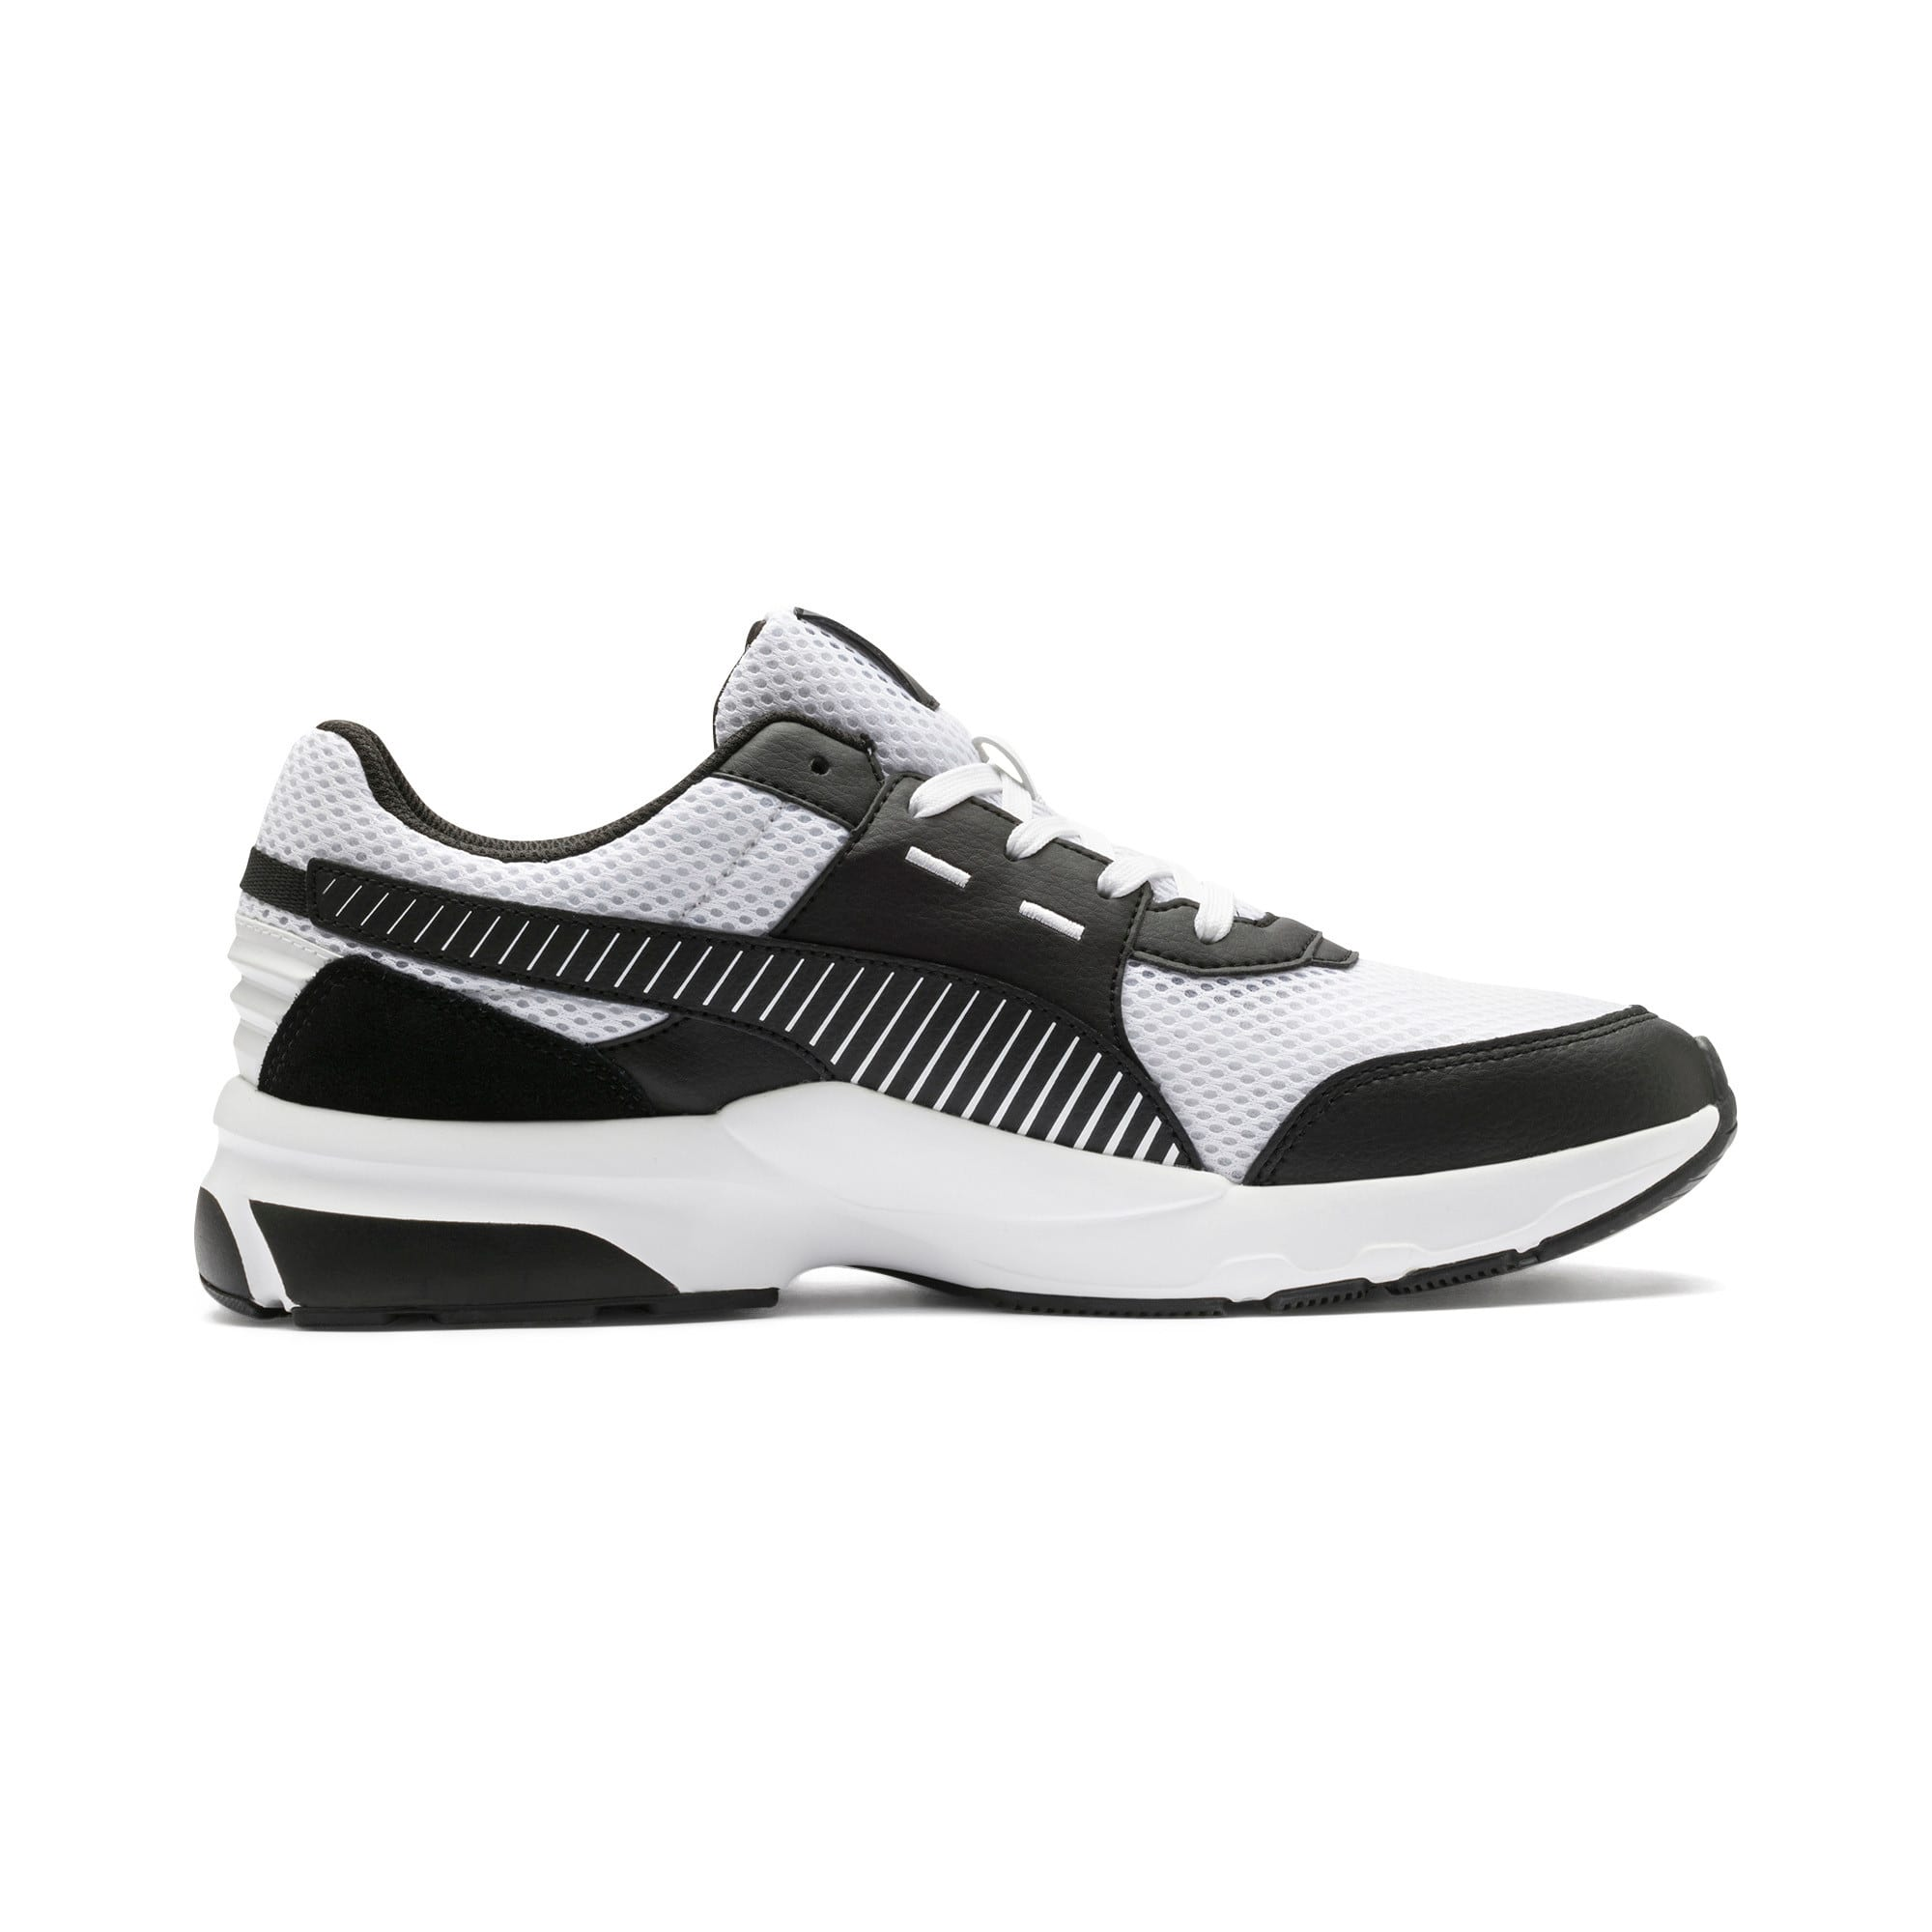 Thumbnail 6 of Future Runner Premium Laufschuhe, Puma White-Puma Black, medium